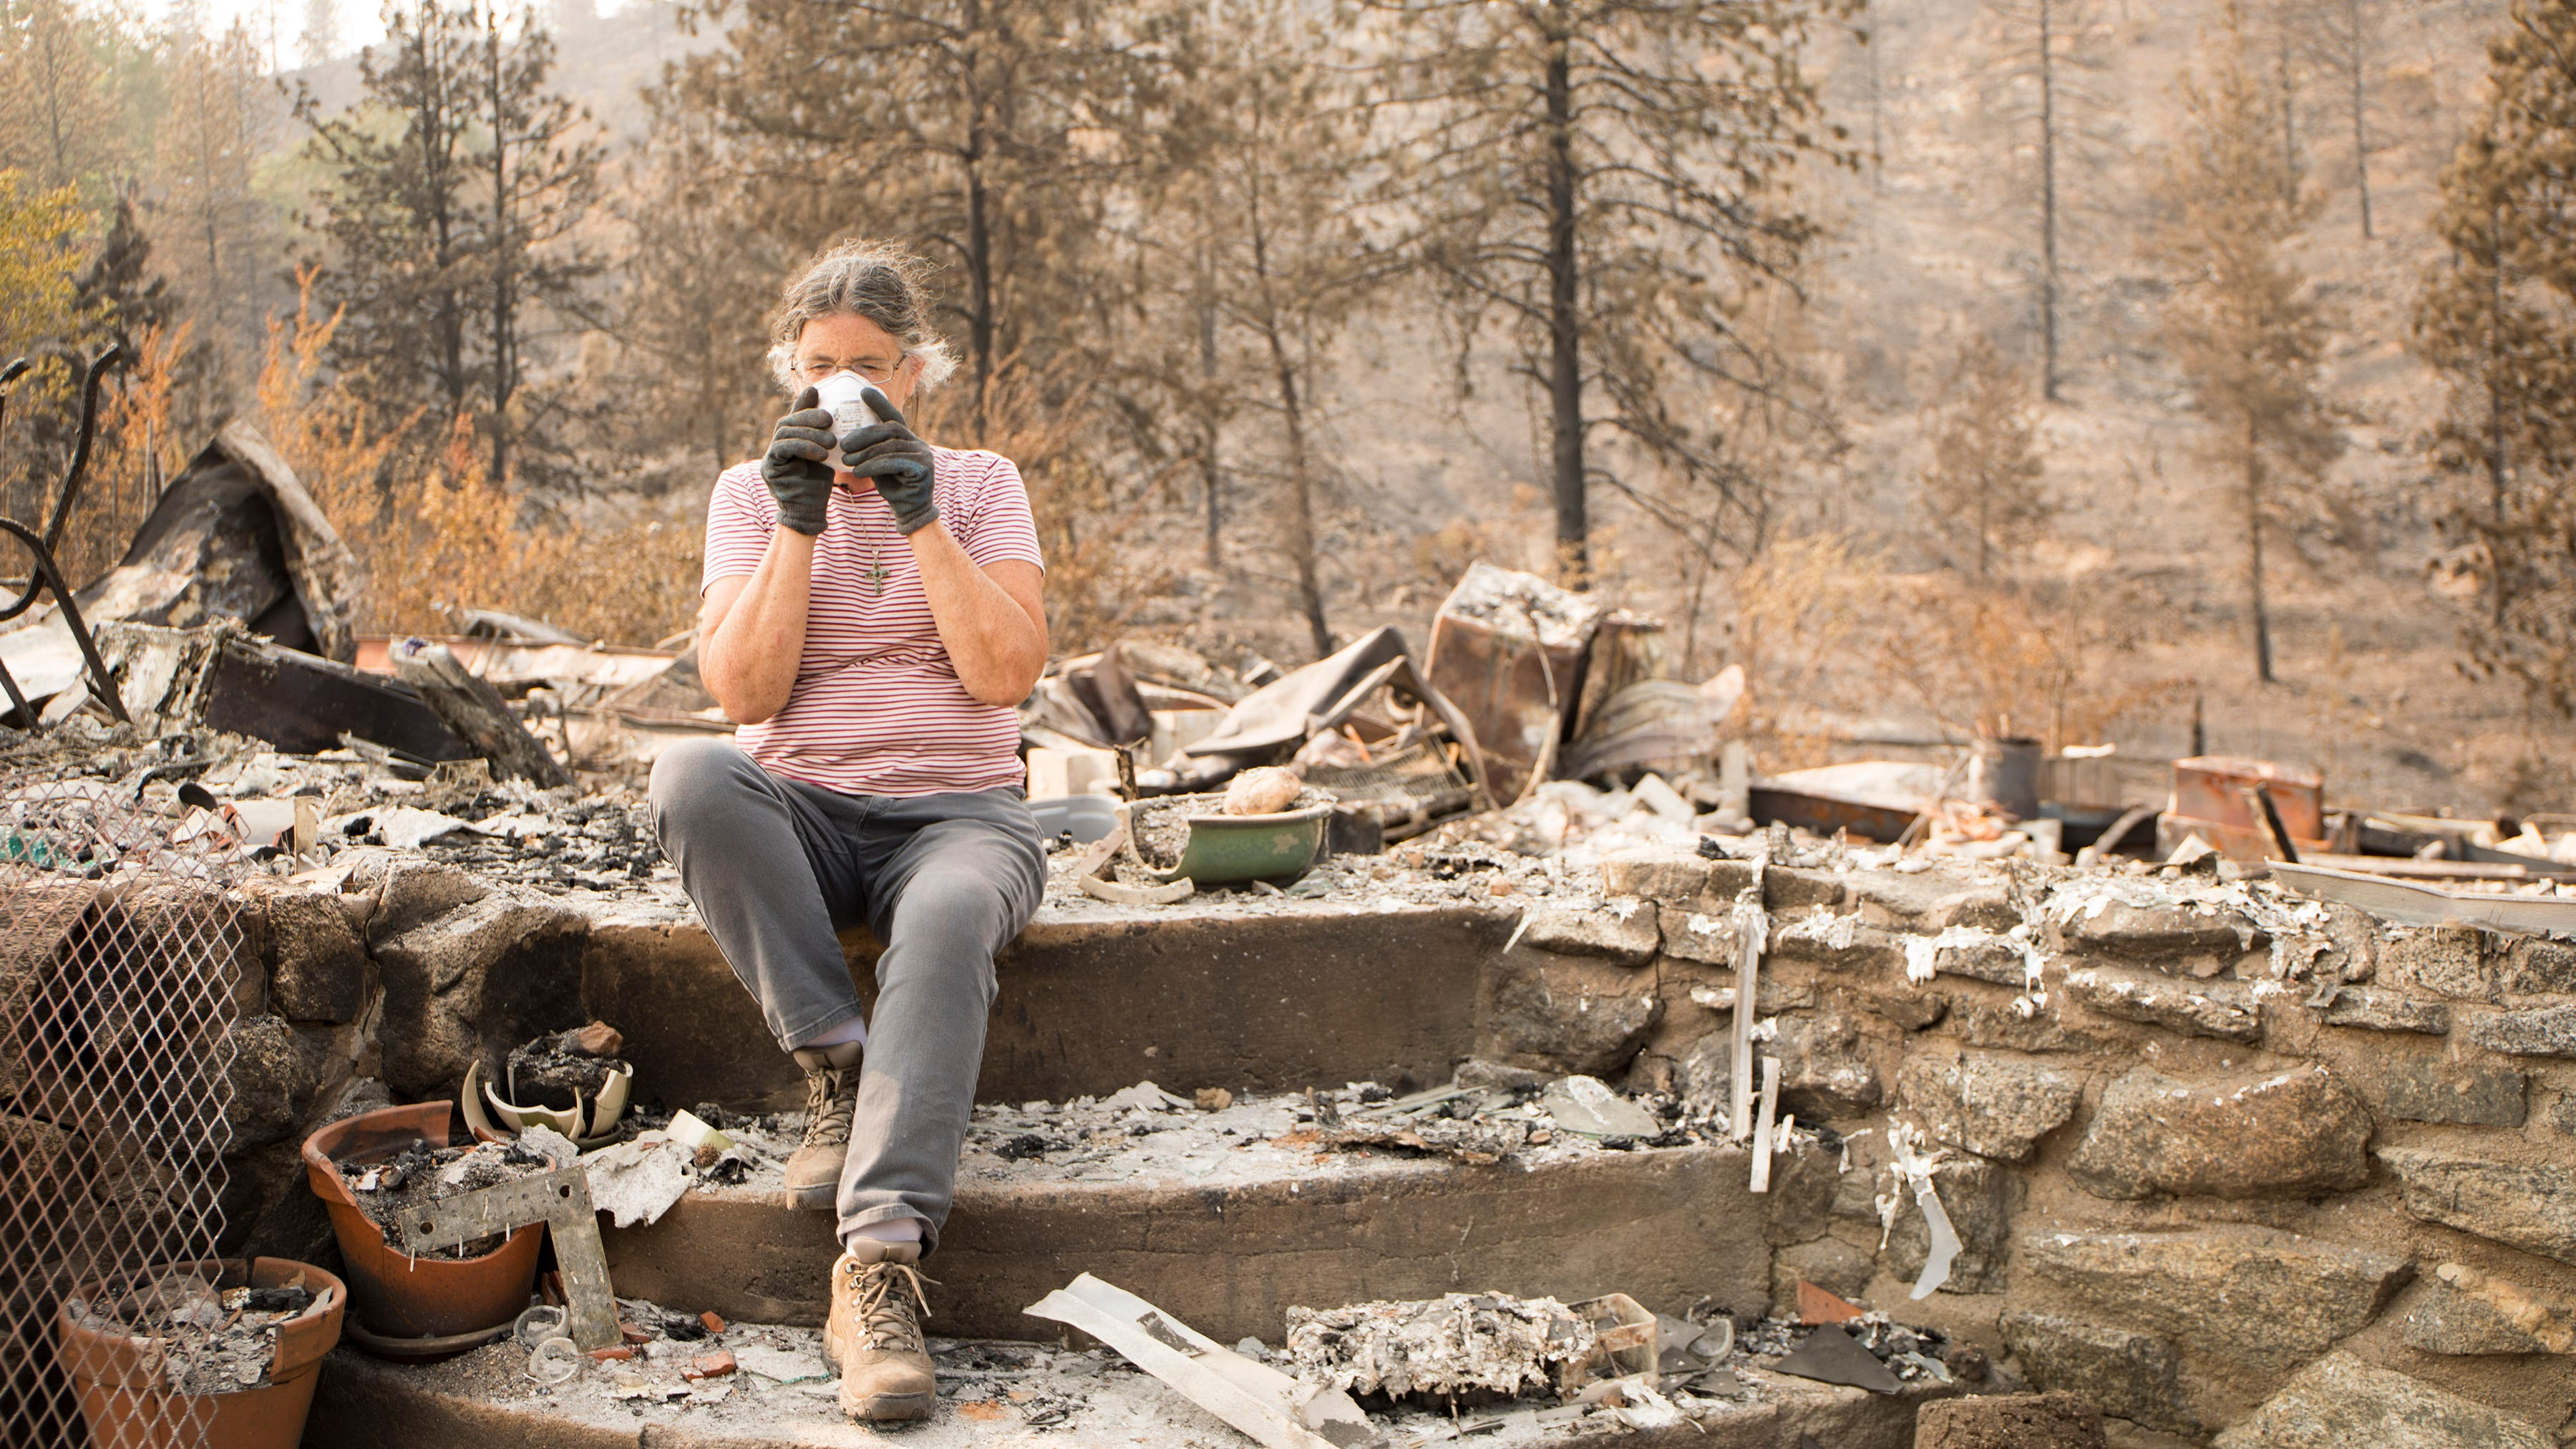 Marci Fernandes, 62 gears up to search through the ashes of  her home on Keswick Rd. near Tanstaafl Lane destroyed in the Carr fire in Keswick, Calif., Saturday, August 26, 2018.